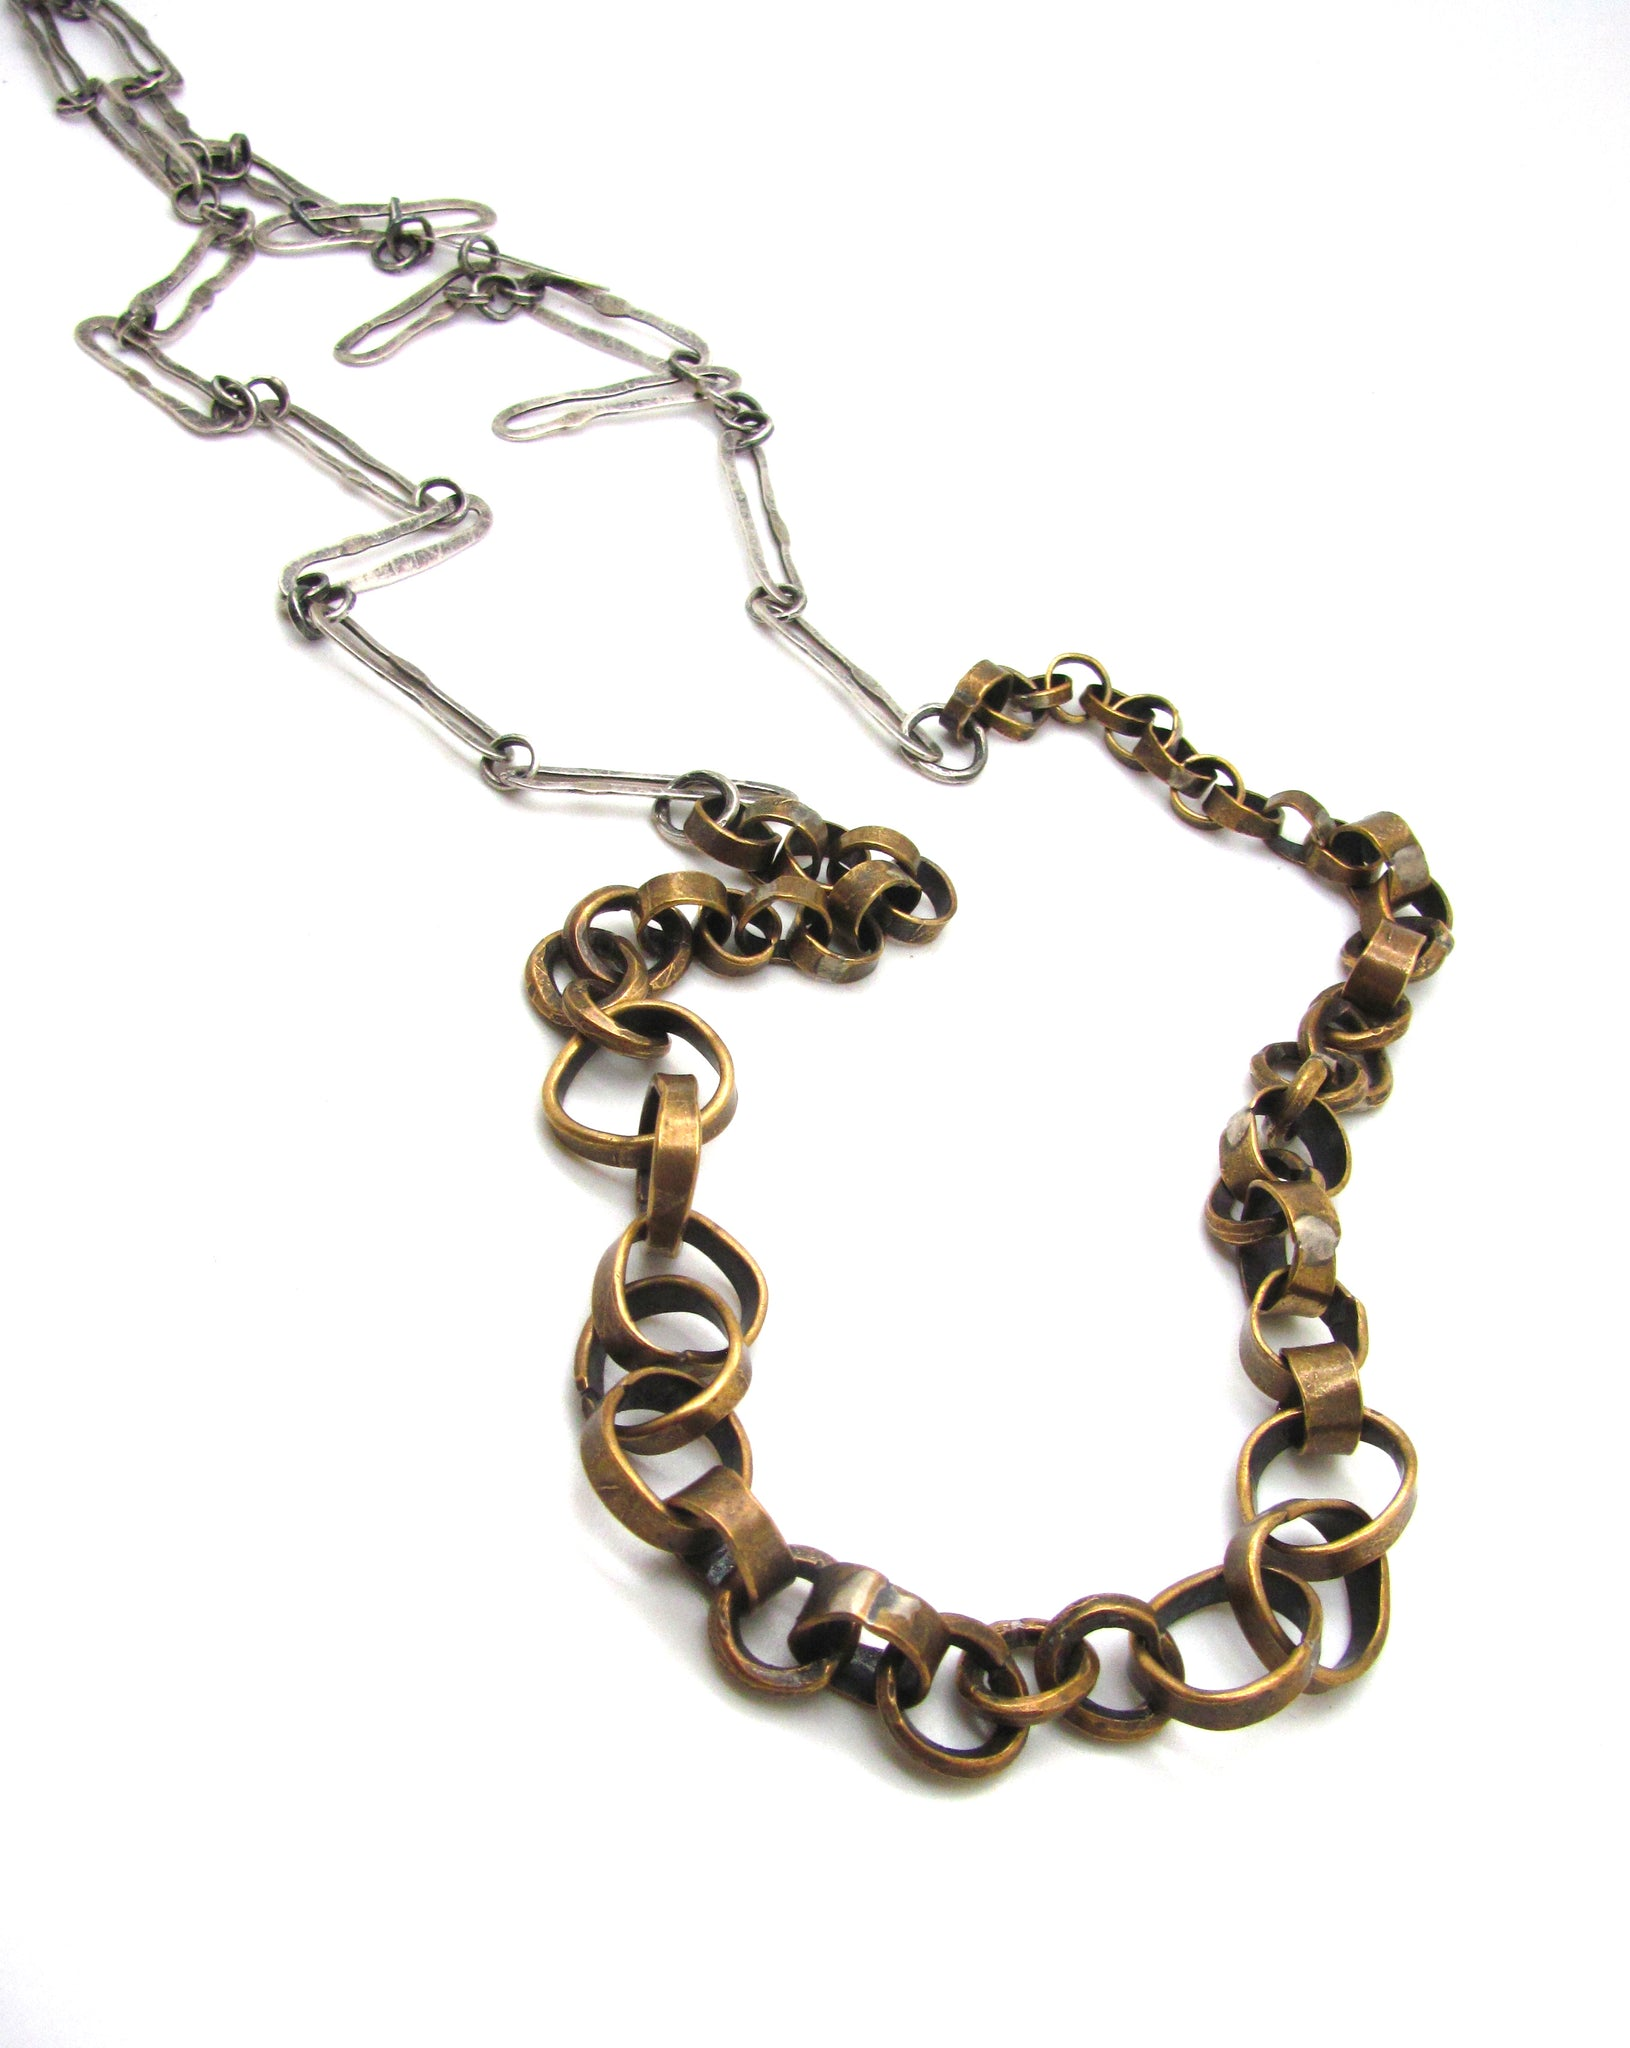 Round and Long Mixed Metals Chain